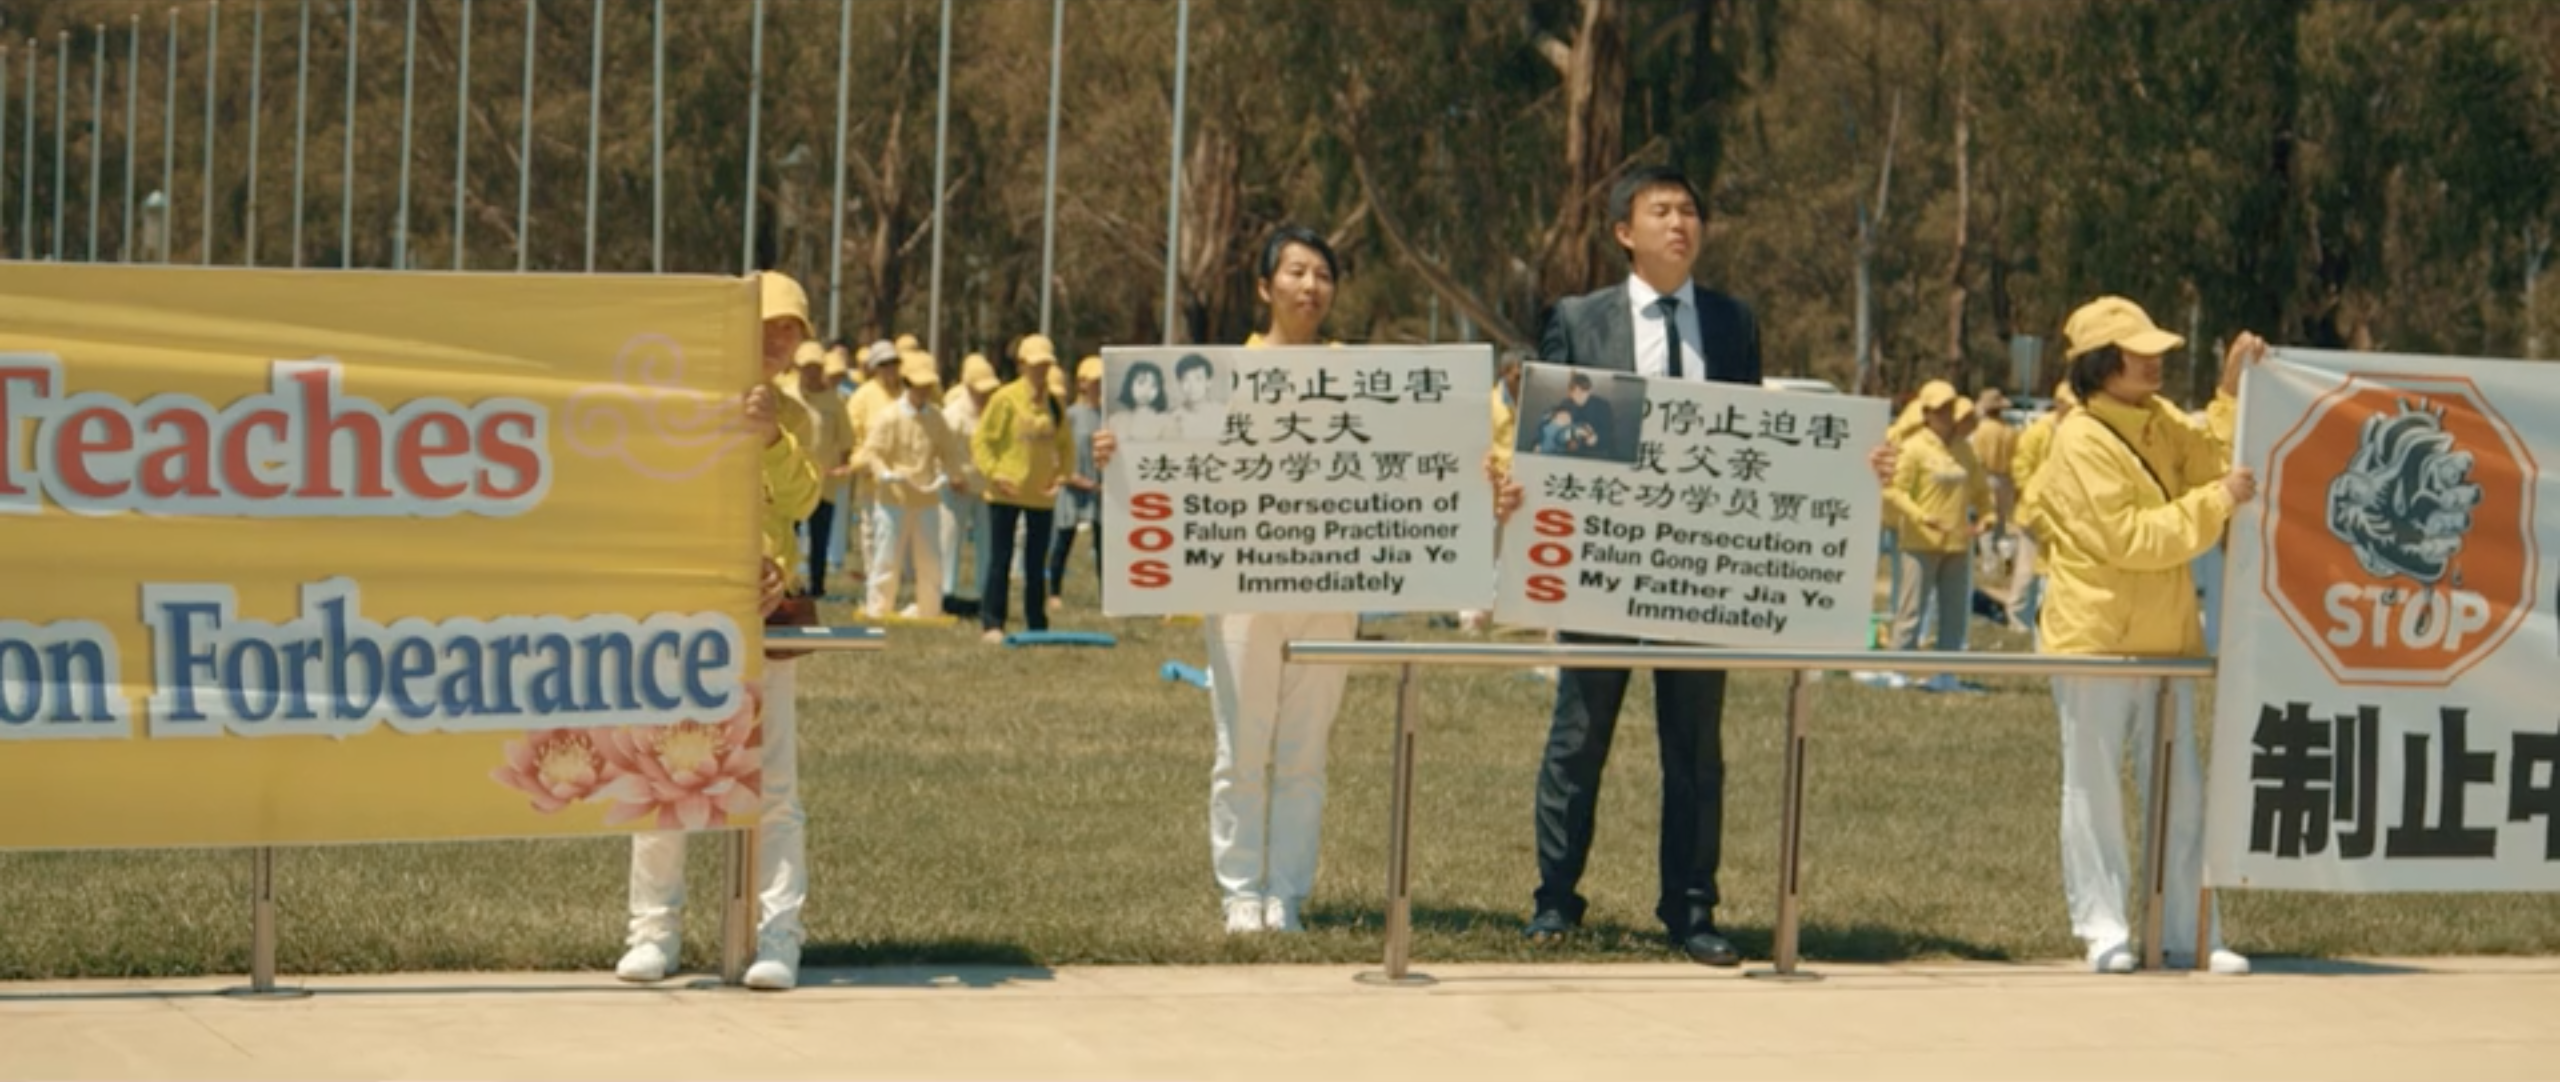 Eric and his mother peacefully protesting with other Falun Dafa practitioners who wish to see an end to the persecution of Falun Dafa in China, signs are held outside Parliament house in Canberra. (Image via Alexander Vimeo/Screenshot)